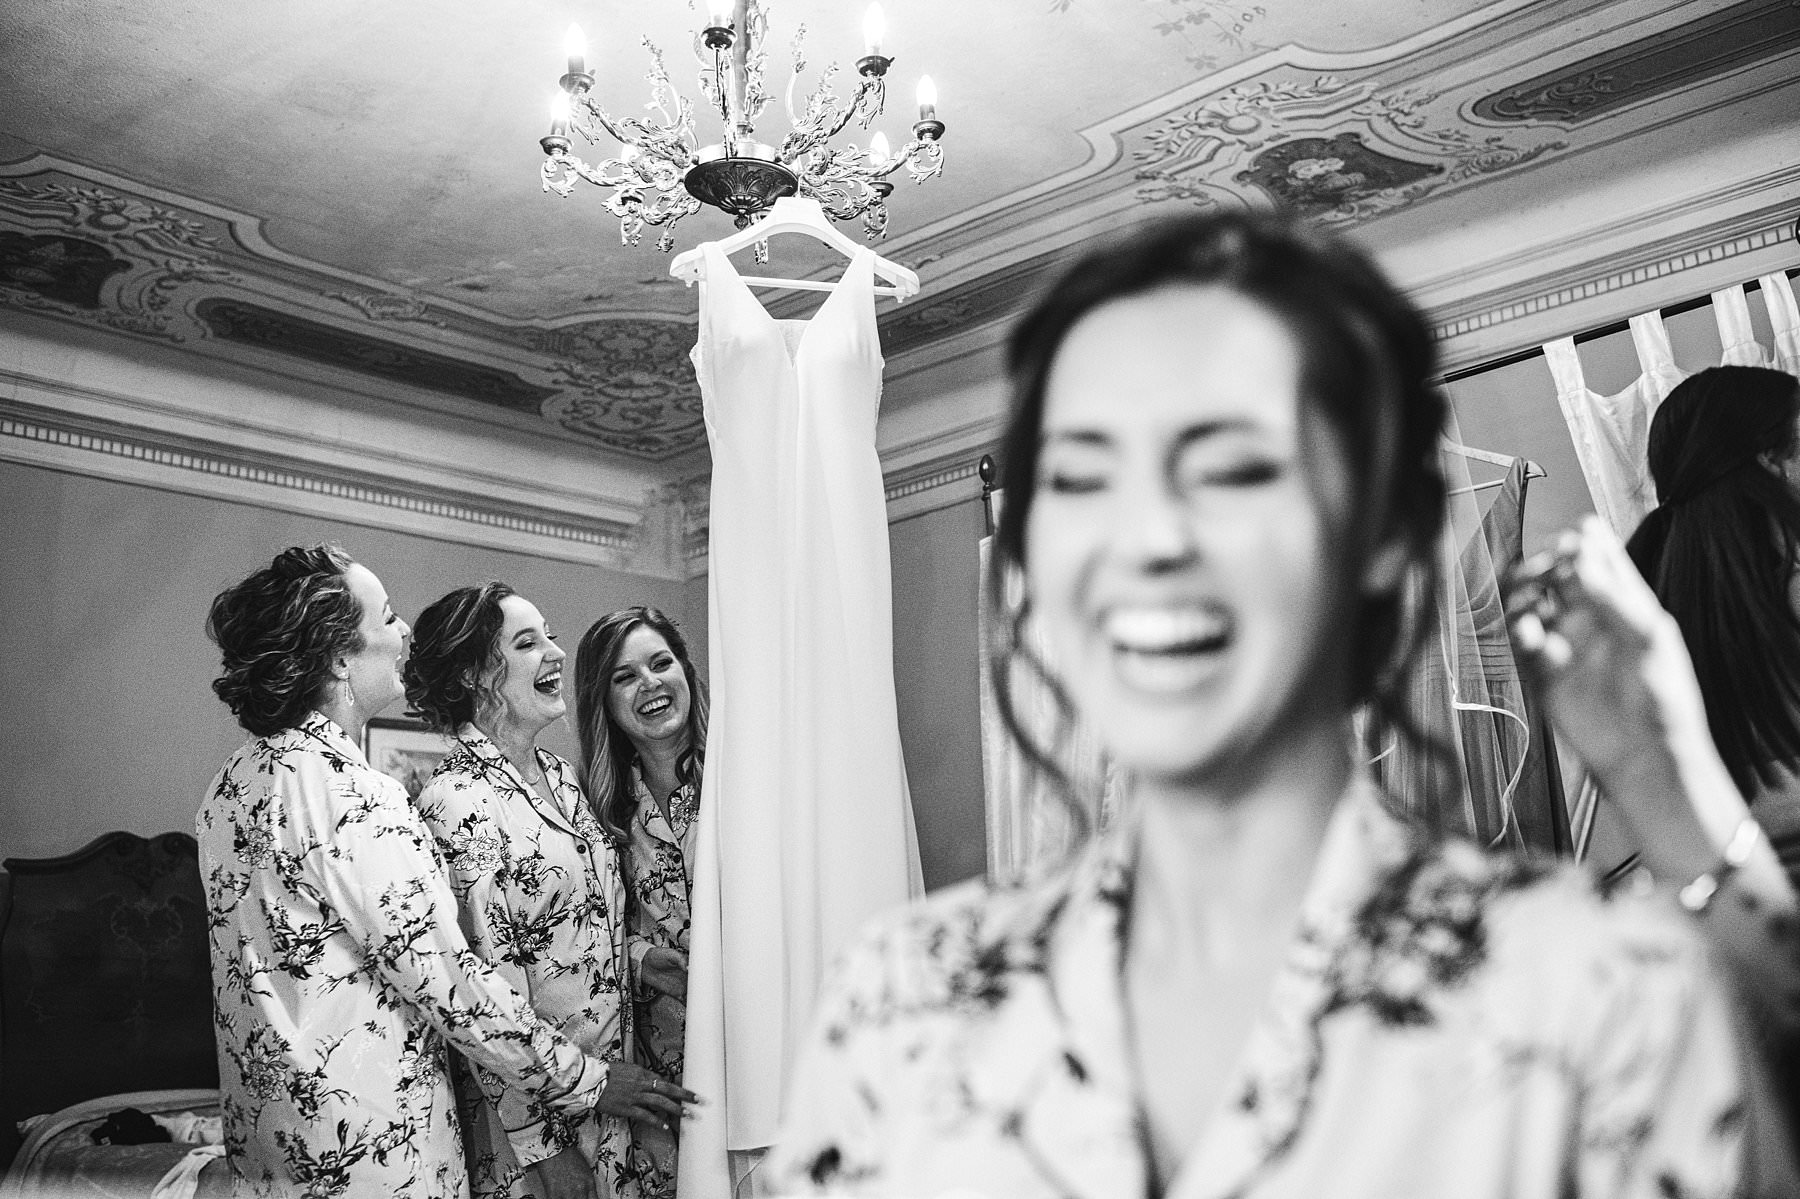 Katrina and John's small wedding in Valdarno. Exciting and fun bride and bridesmaids photo during preparation at Palazzo Vanneschi in Bucine Valdarno